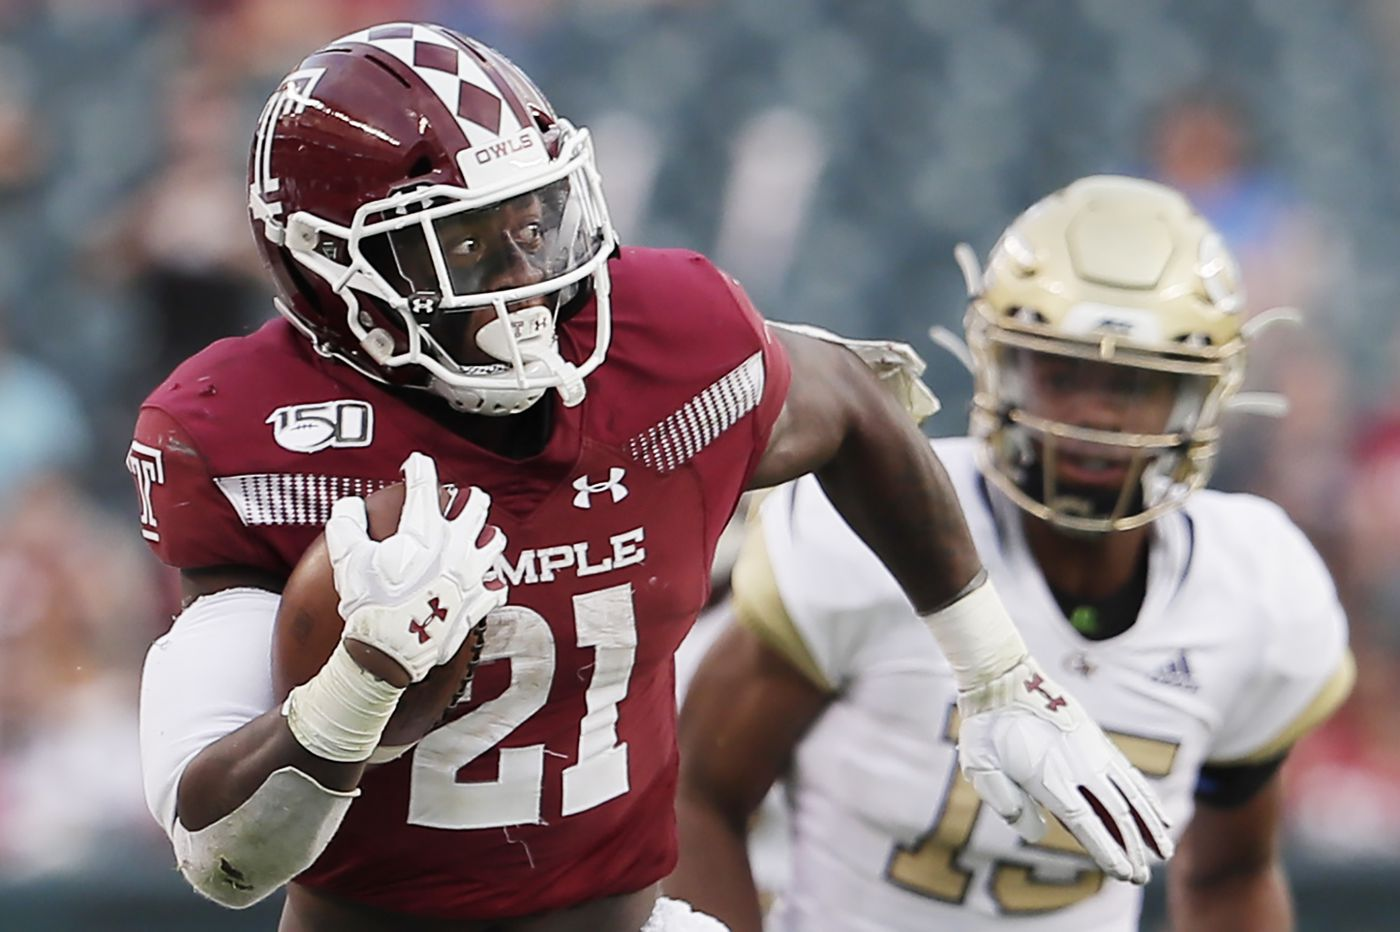 Temple-East Carolina prediction: Owls looking for a better road result